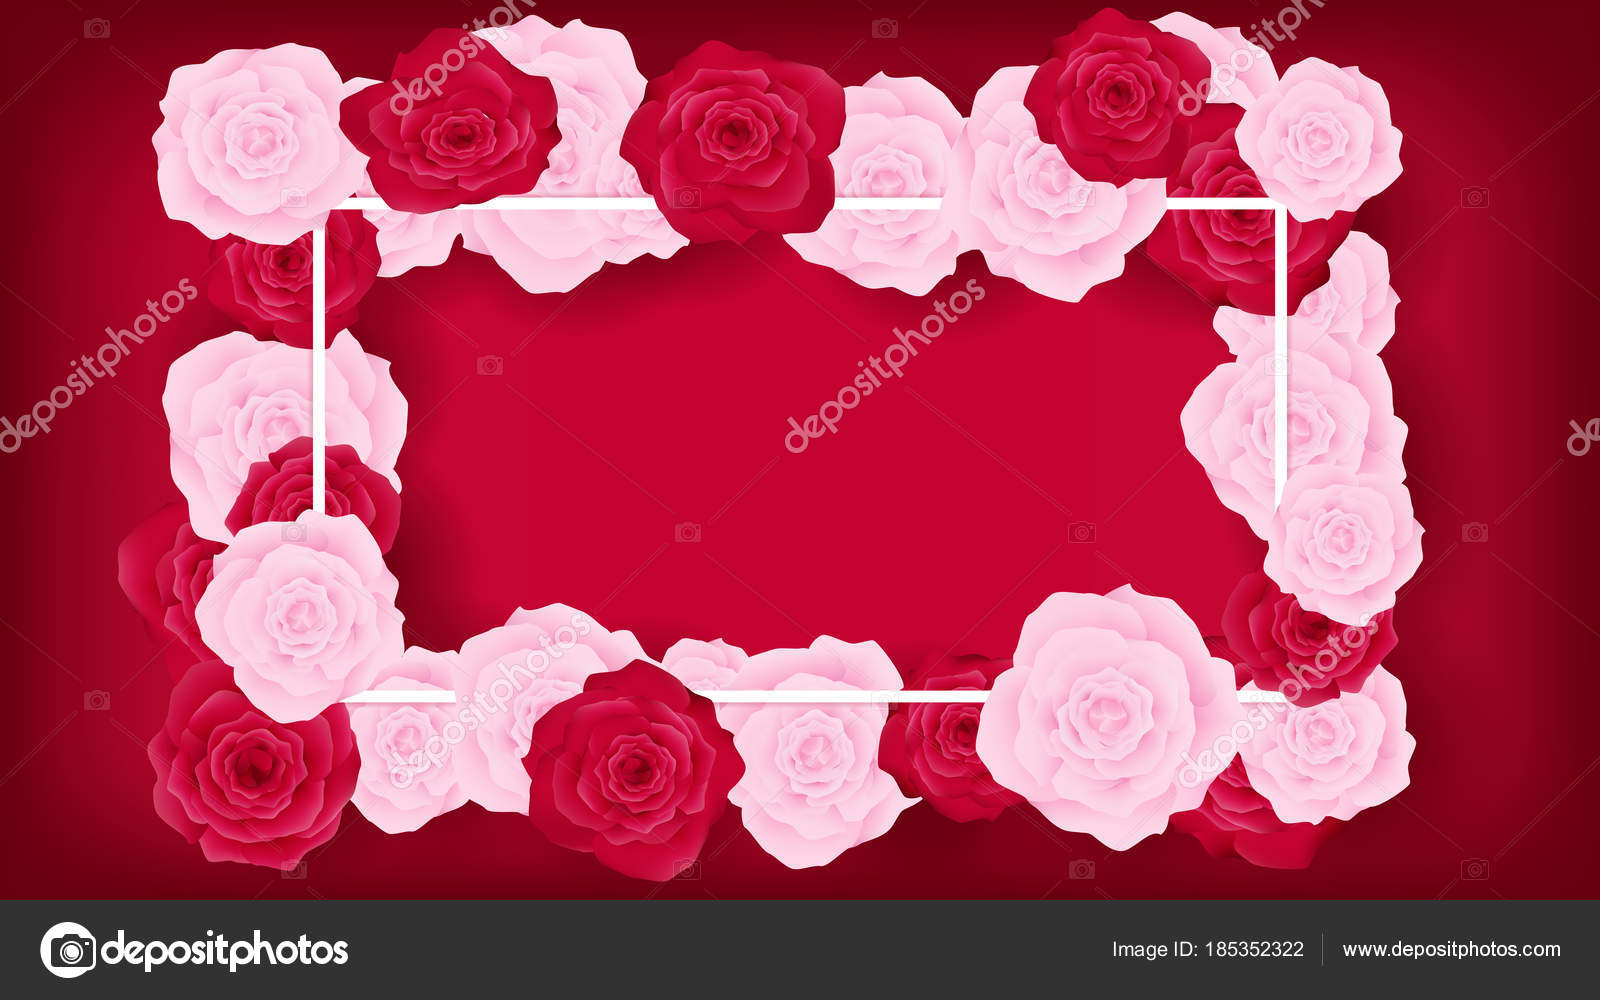 Top view sweet invitation decorate red background border pink red invitation decorate in red background beside border along with pink and red rose middle leave some copy space recommended in white textartwork usage stopboris Gallery